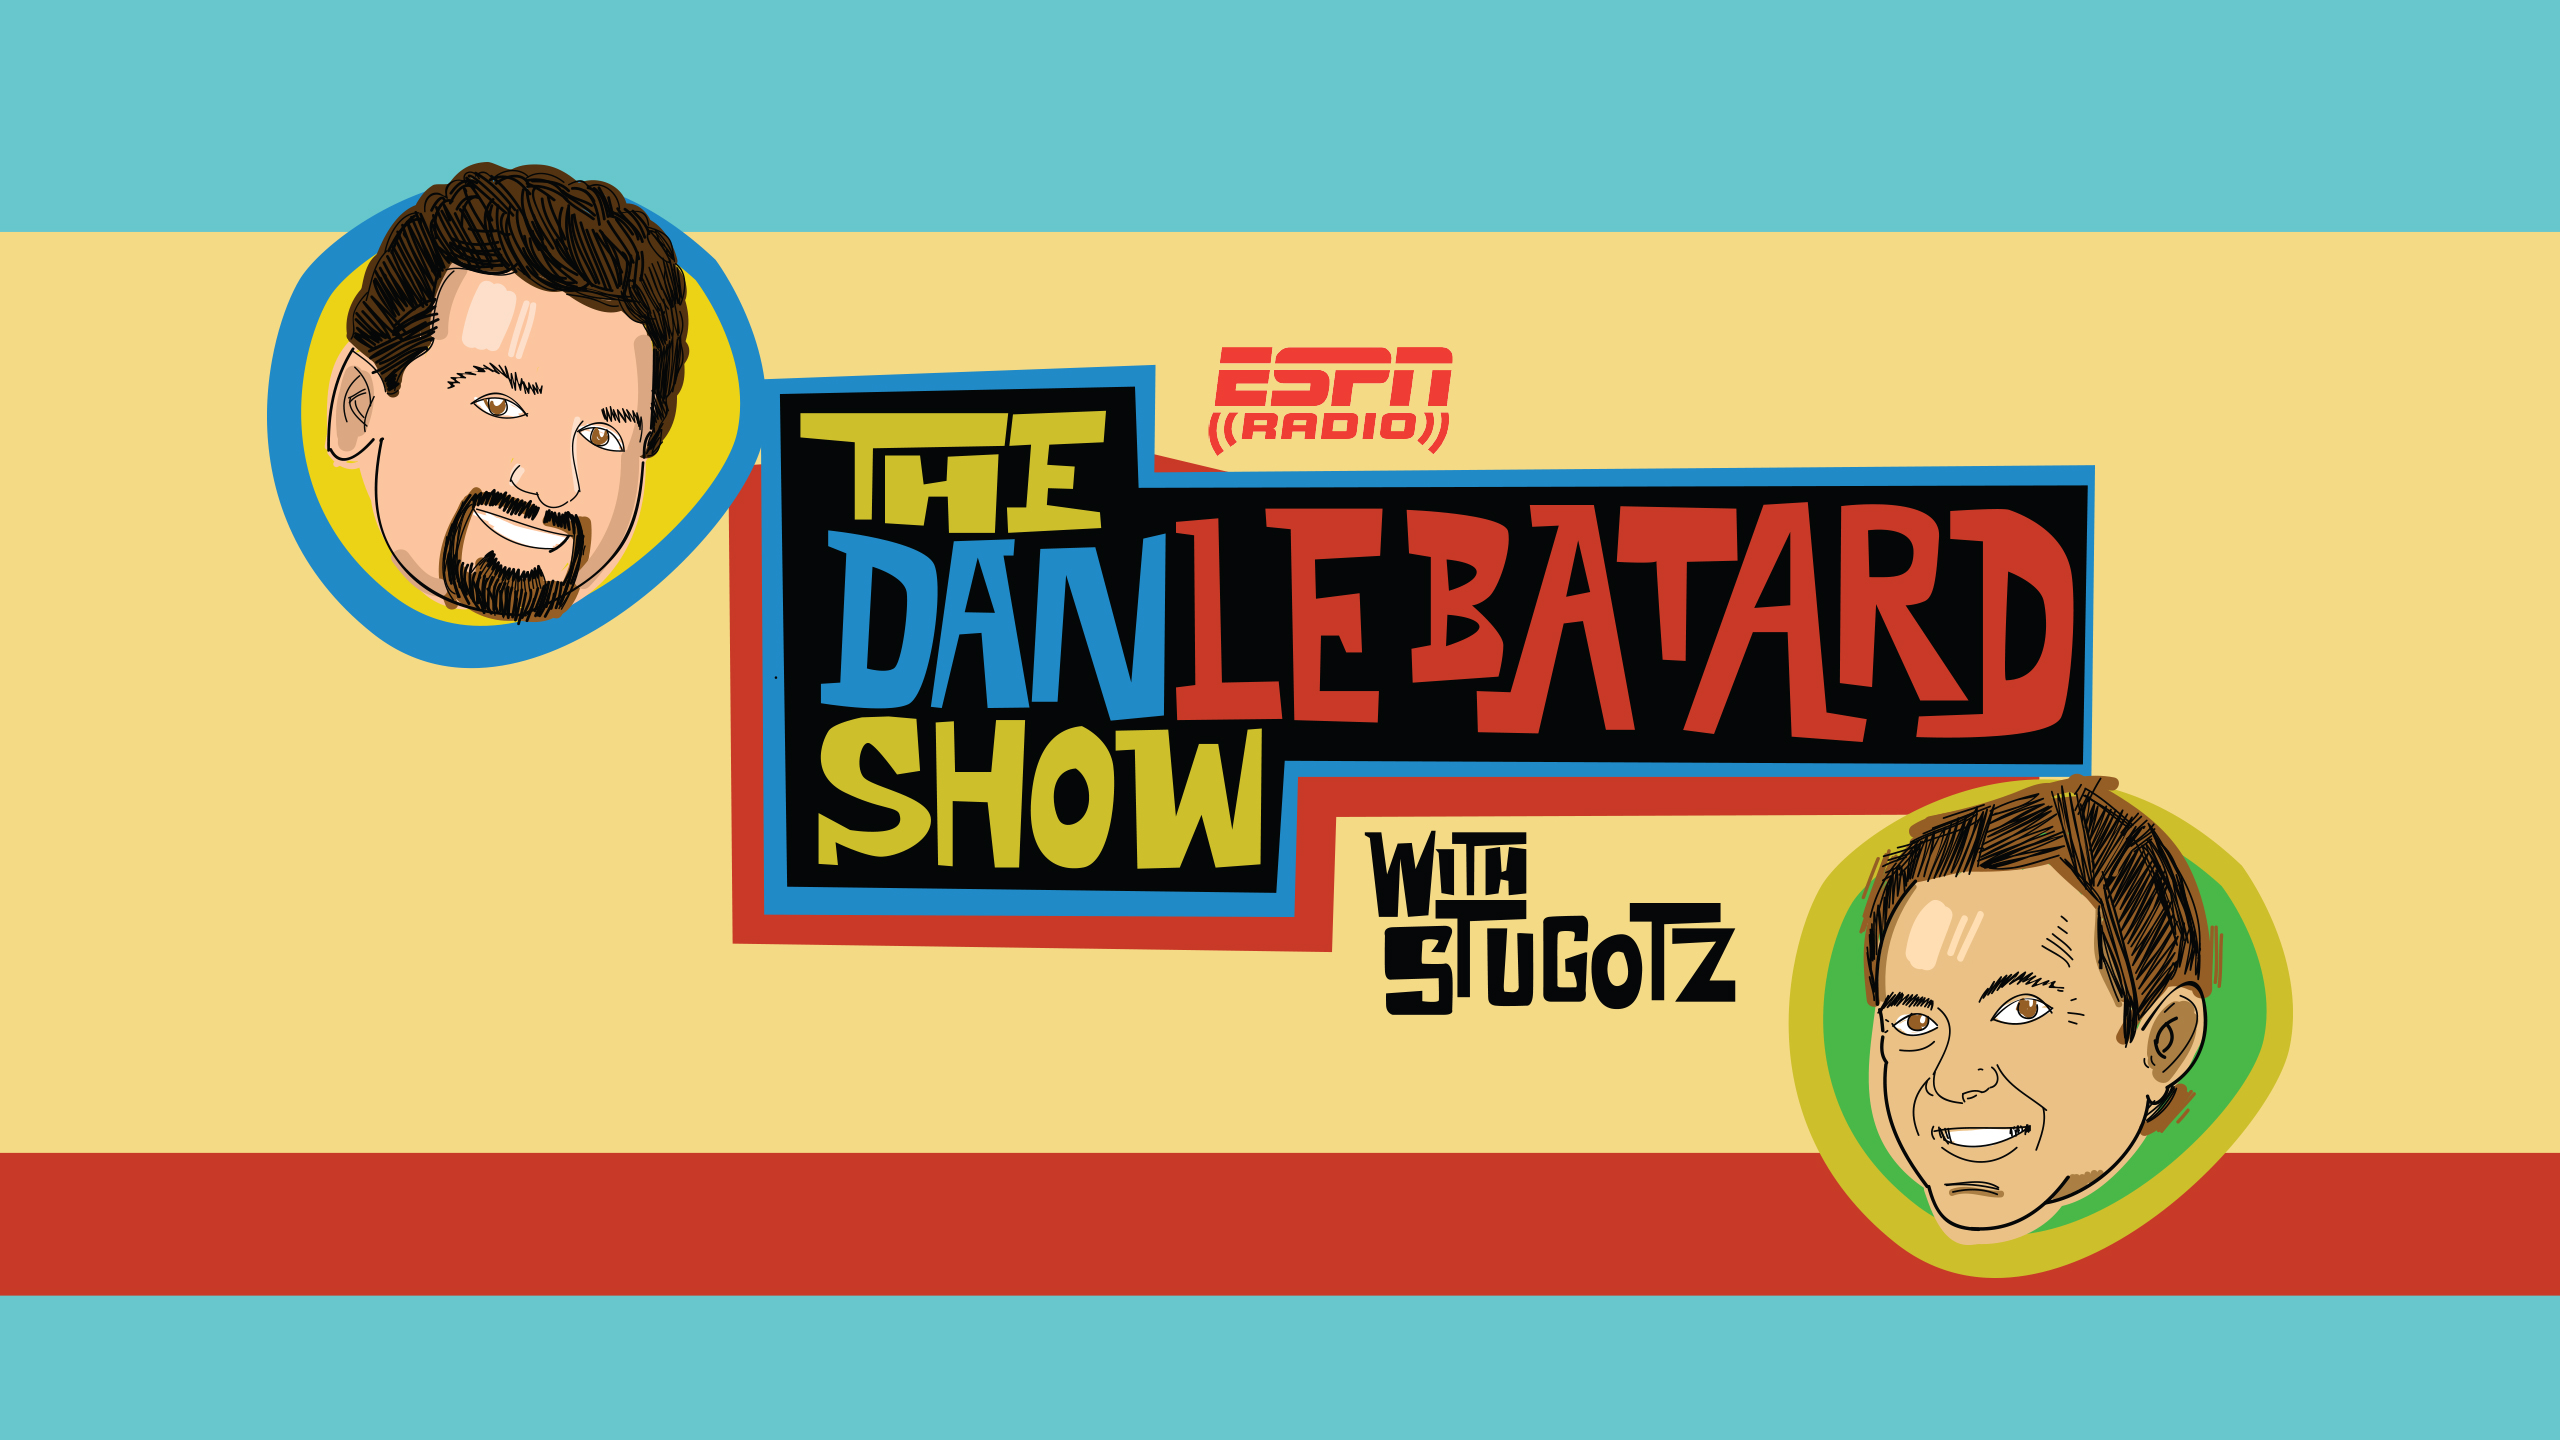 Thu, 1/17 - The Dan Le Batard Show with Stugotz Presented by Progressive